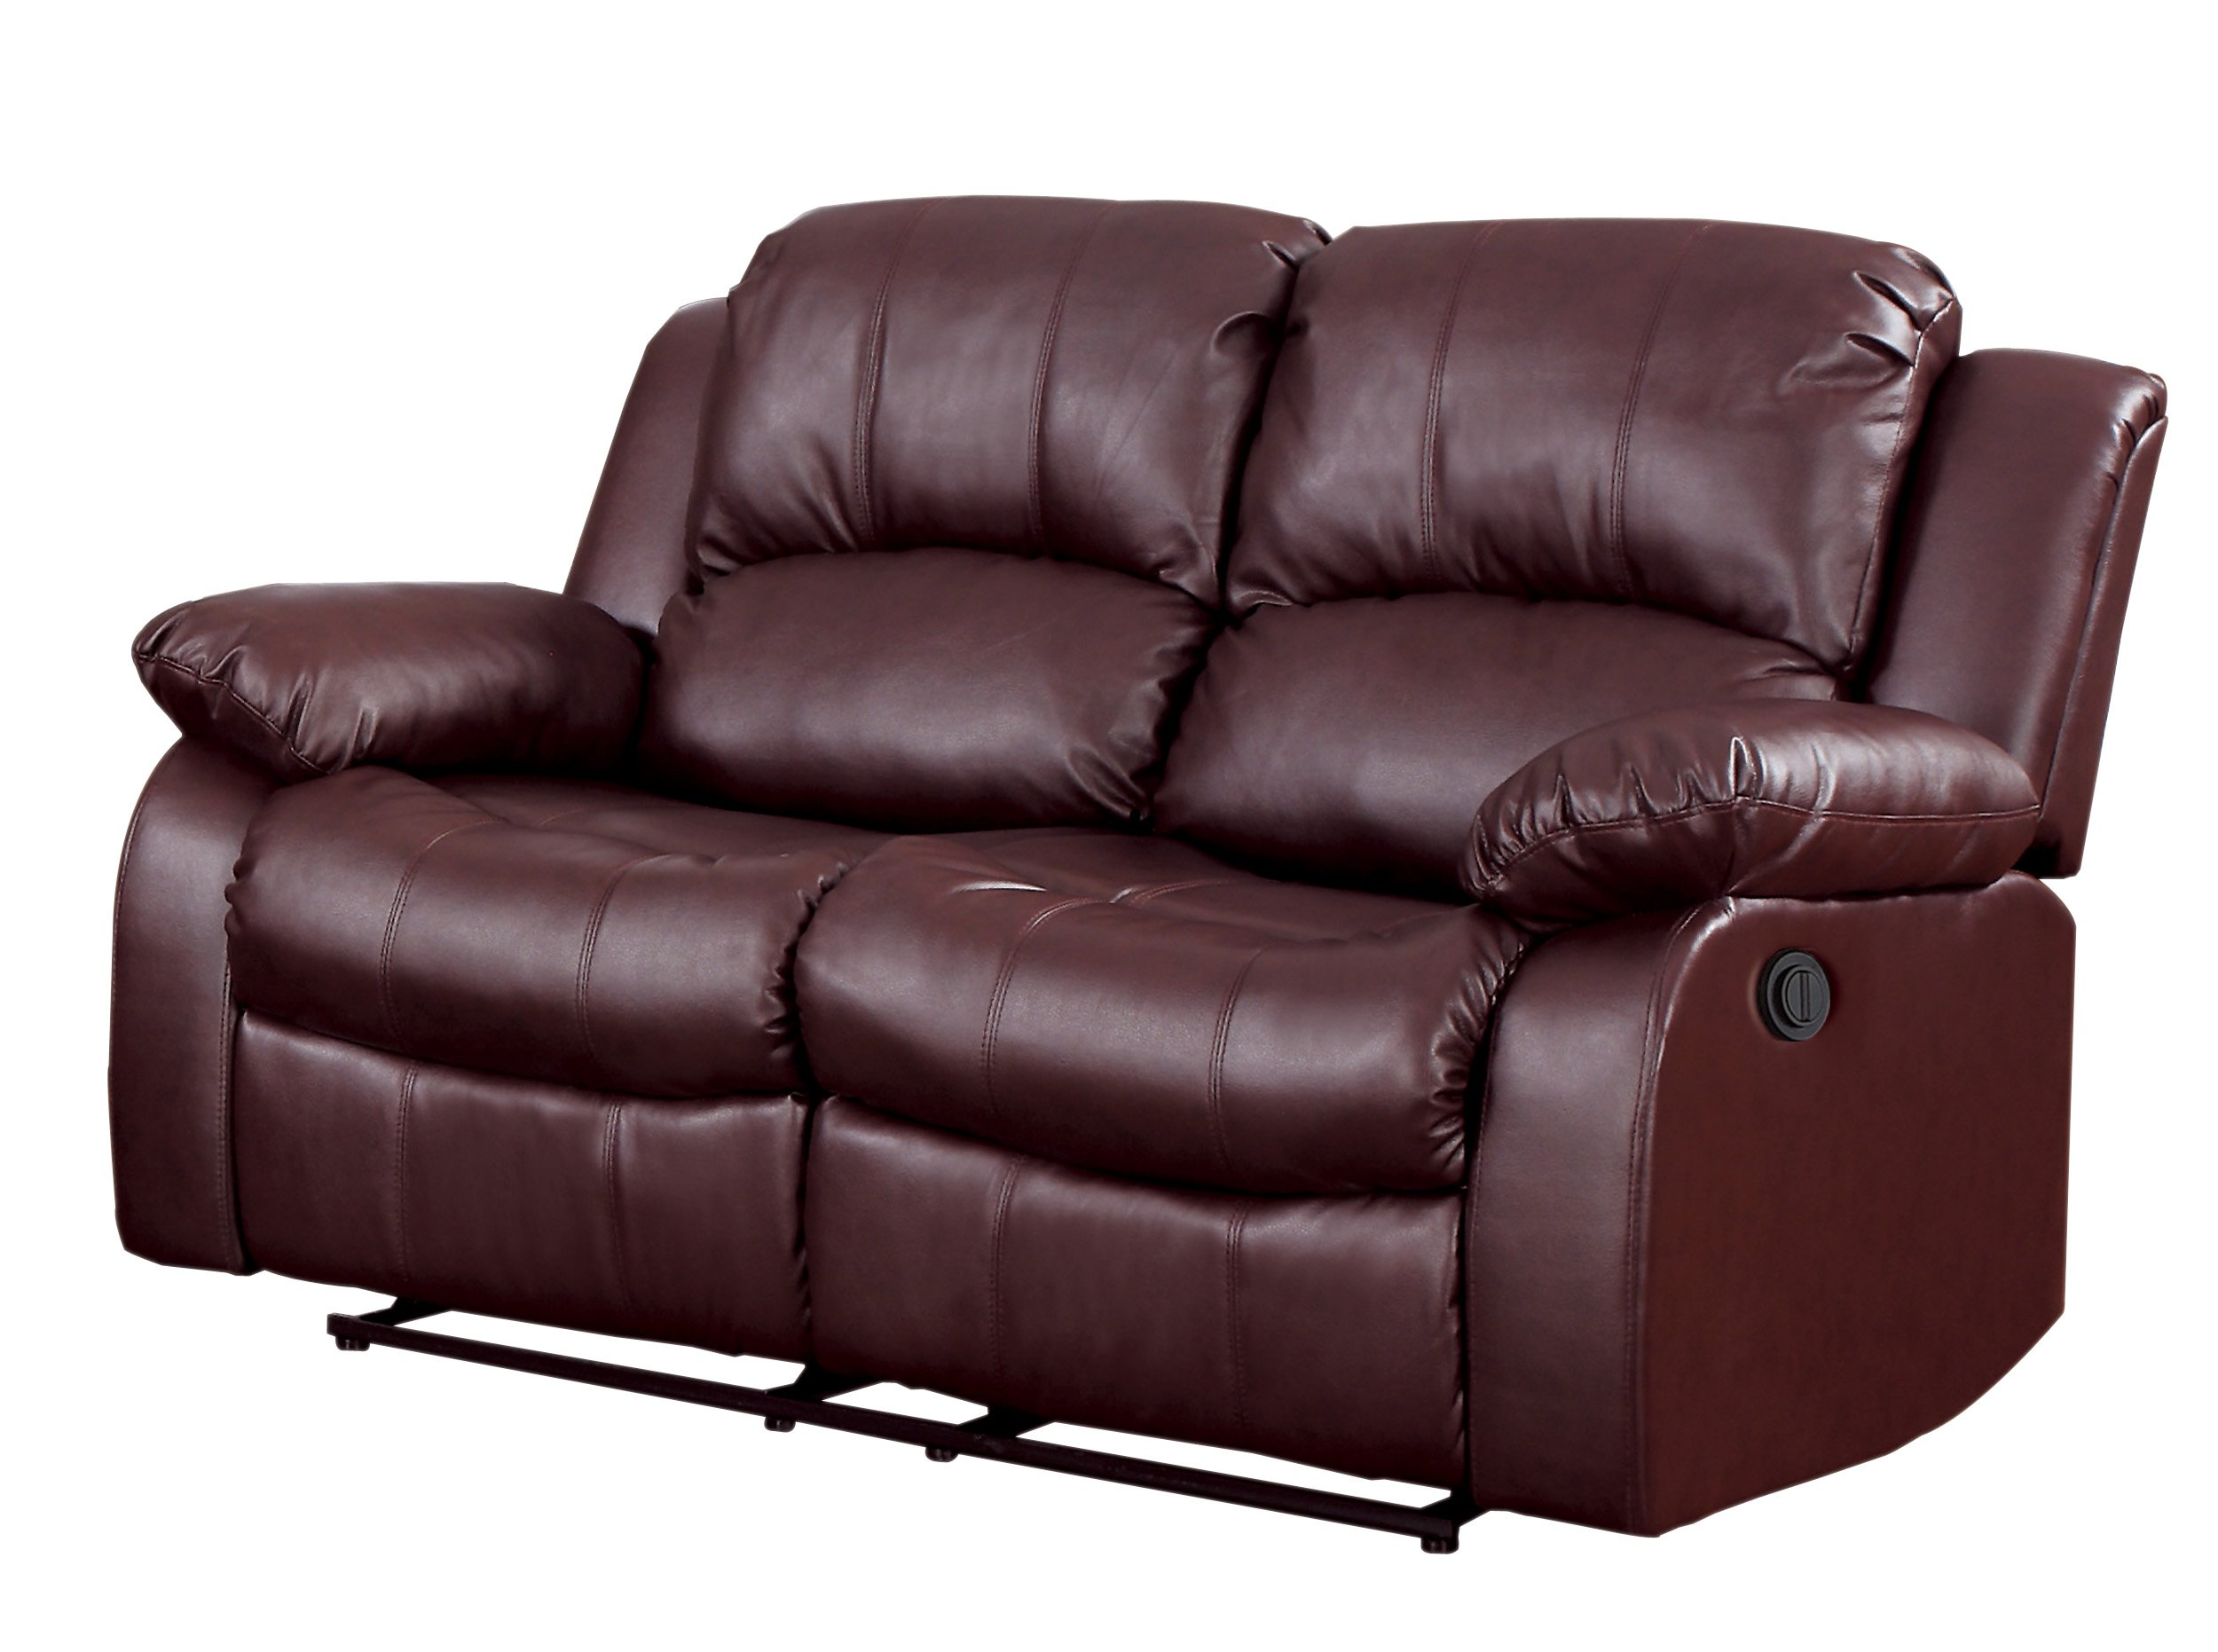 Homelegance 9700BRW-2PW Plushy Rolled Tufted Power Reclining Motion Bonded Leather  Love Seat, Brown